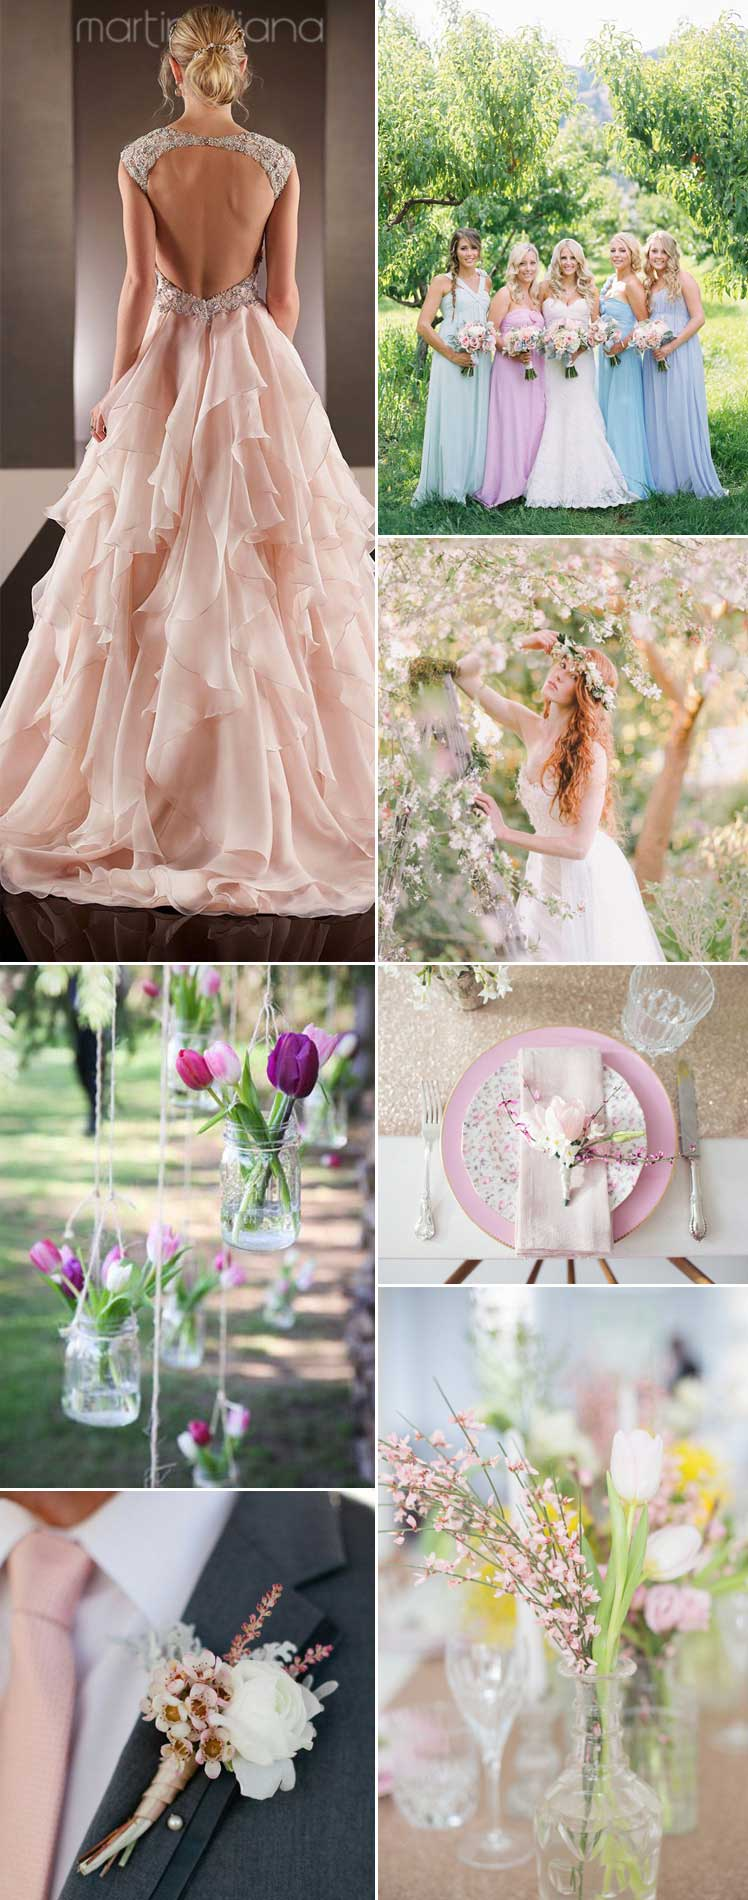 Pretty ideas for a spring wedding day